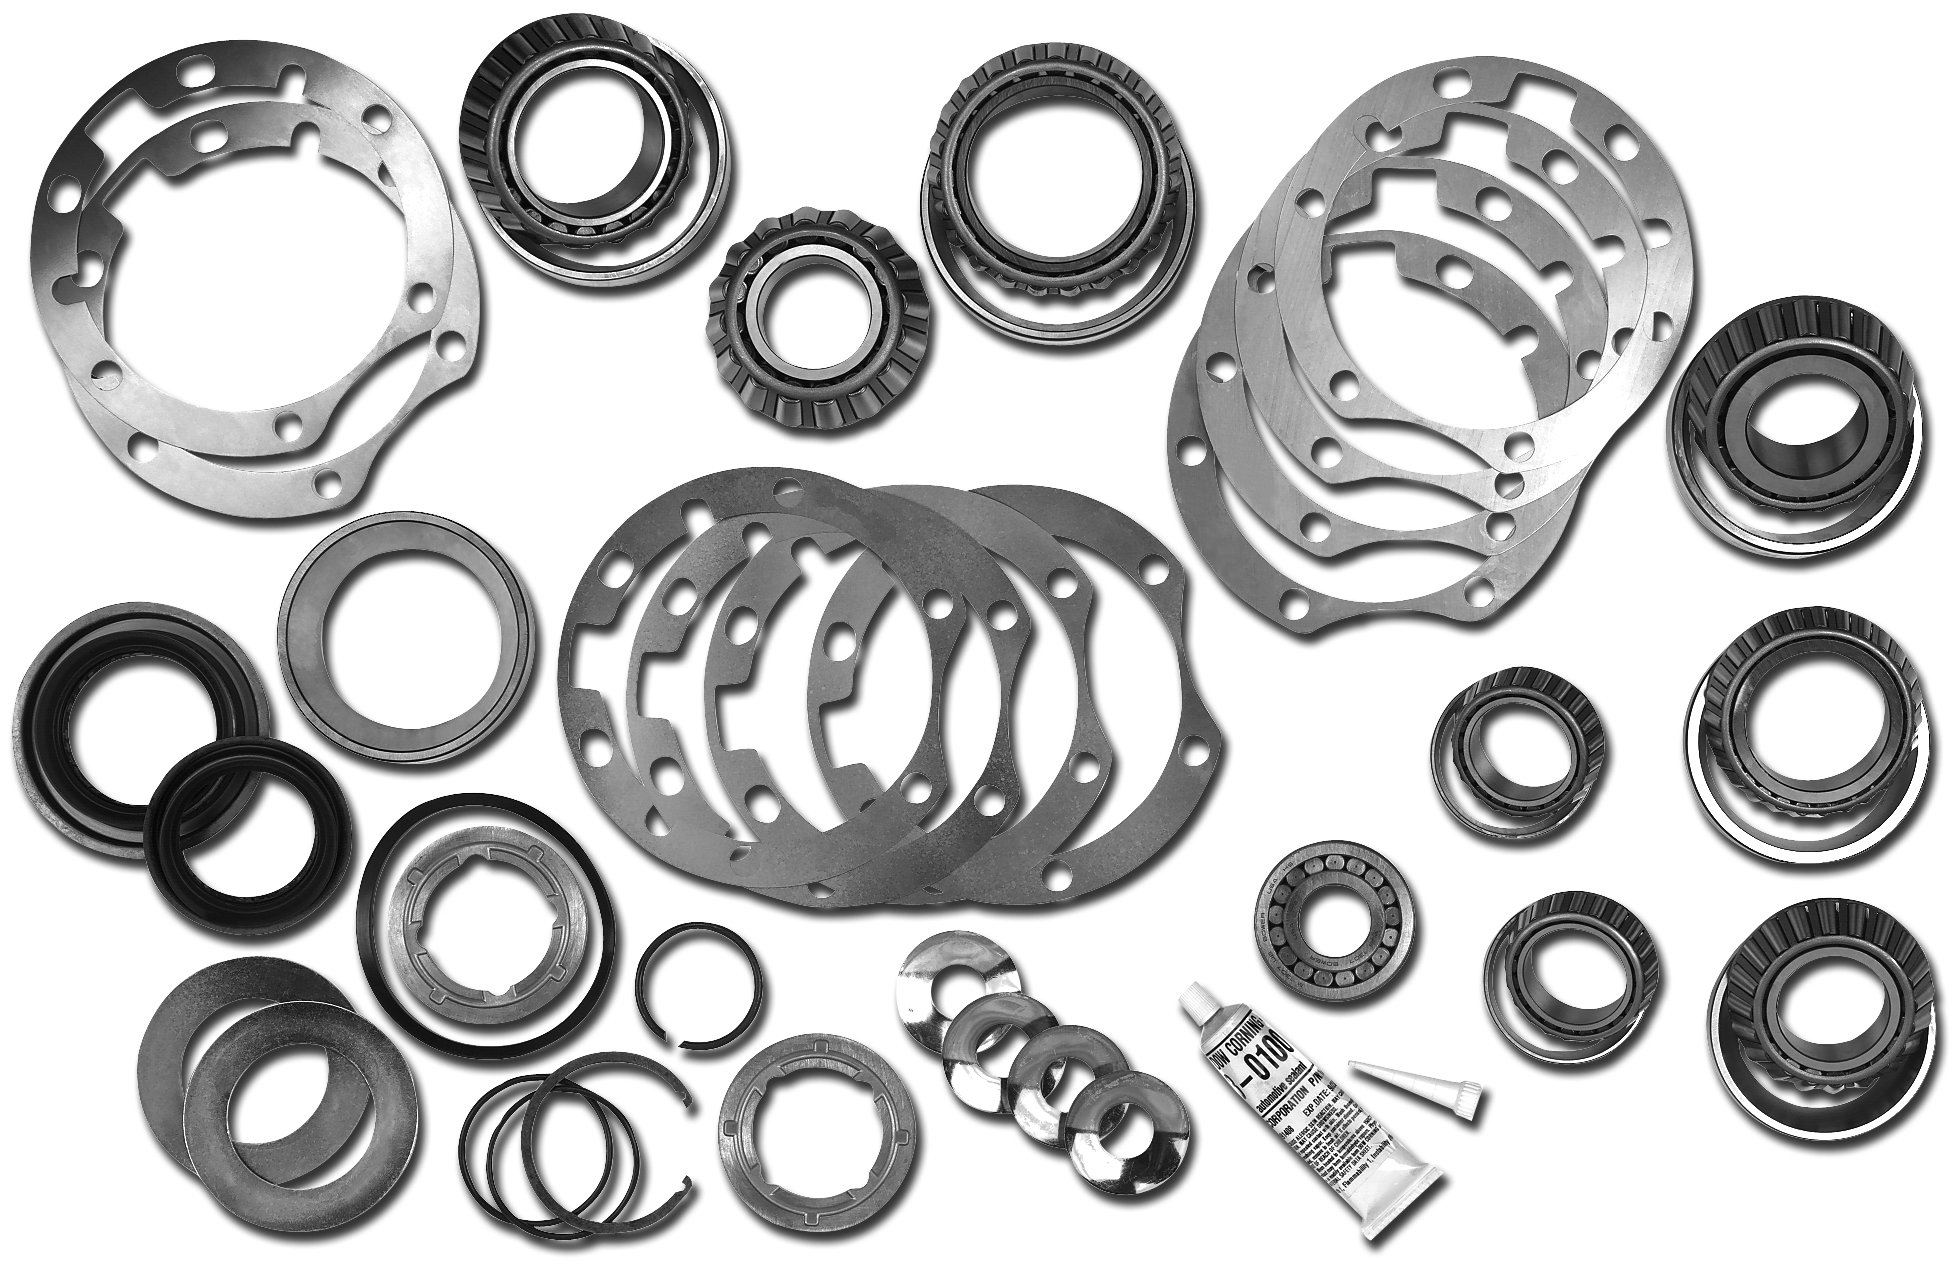 Dana Spicer Master Axle Overhaul Kit For 97 99 Jeep Wrangler Tj With Model 30 Front